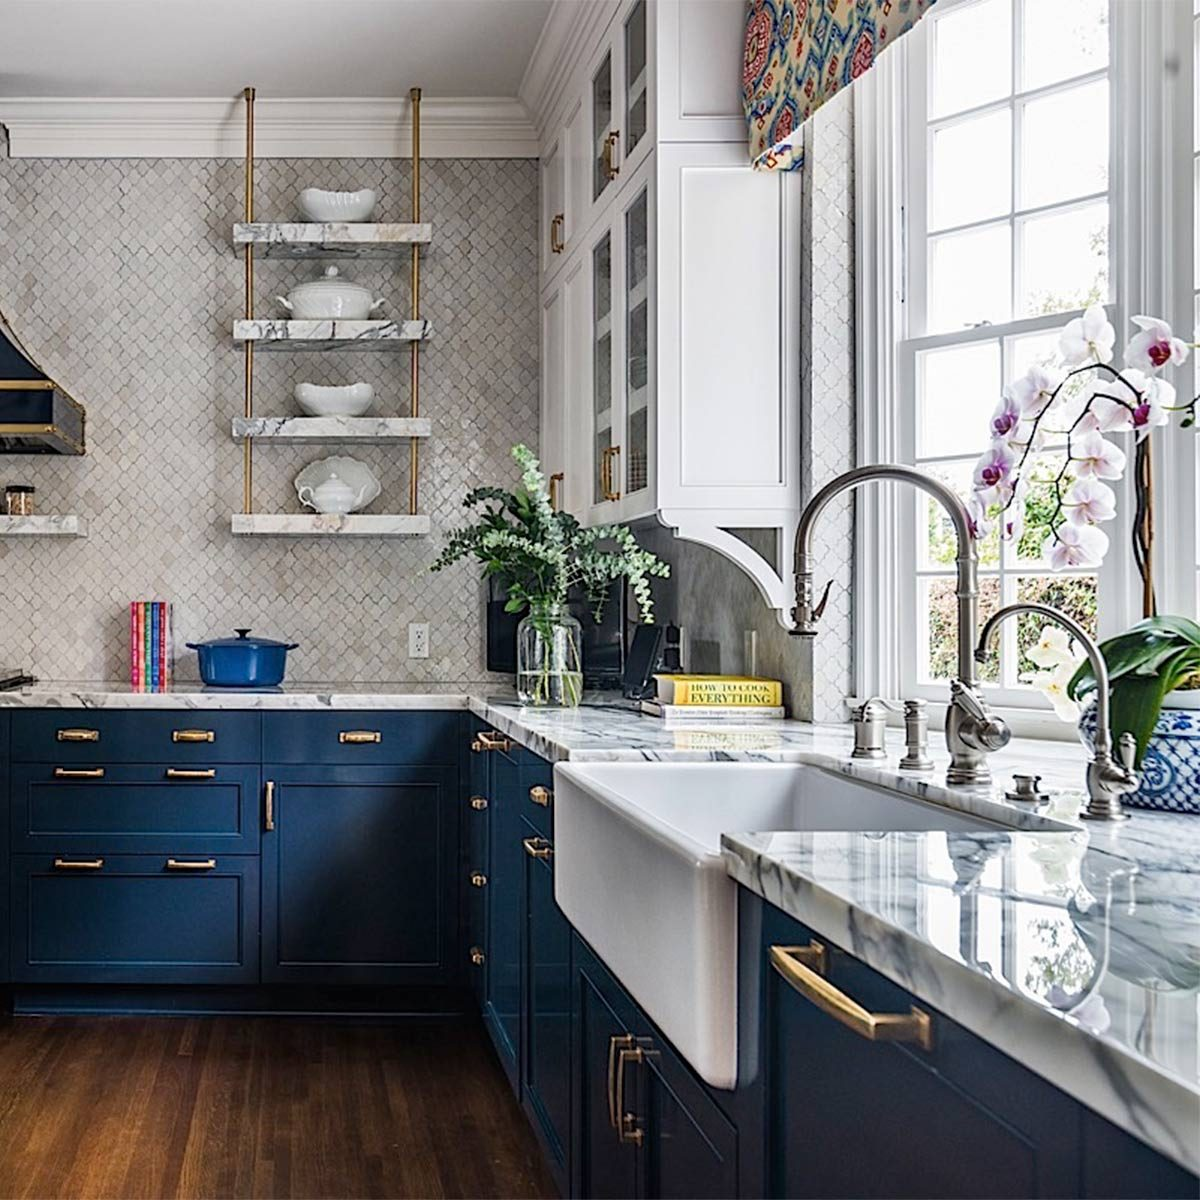 Incredible Kitchen Remodeling Ideas — The Family Handyman on Small:xmqi70Klvwi= Kitchen Remodel Ideas  id=70343